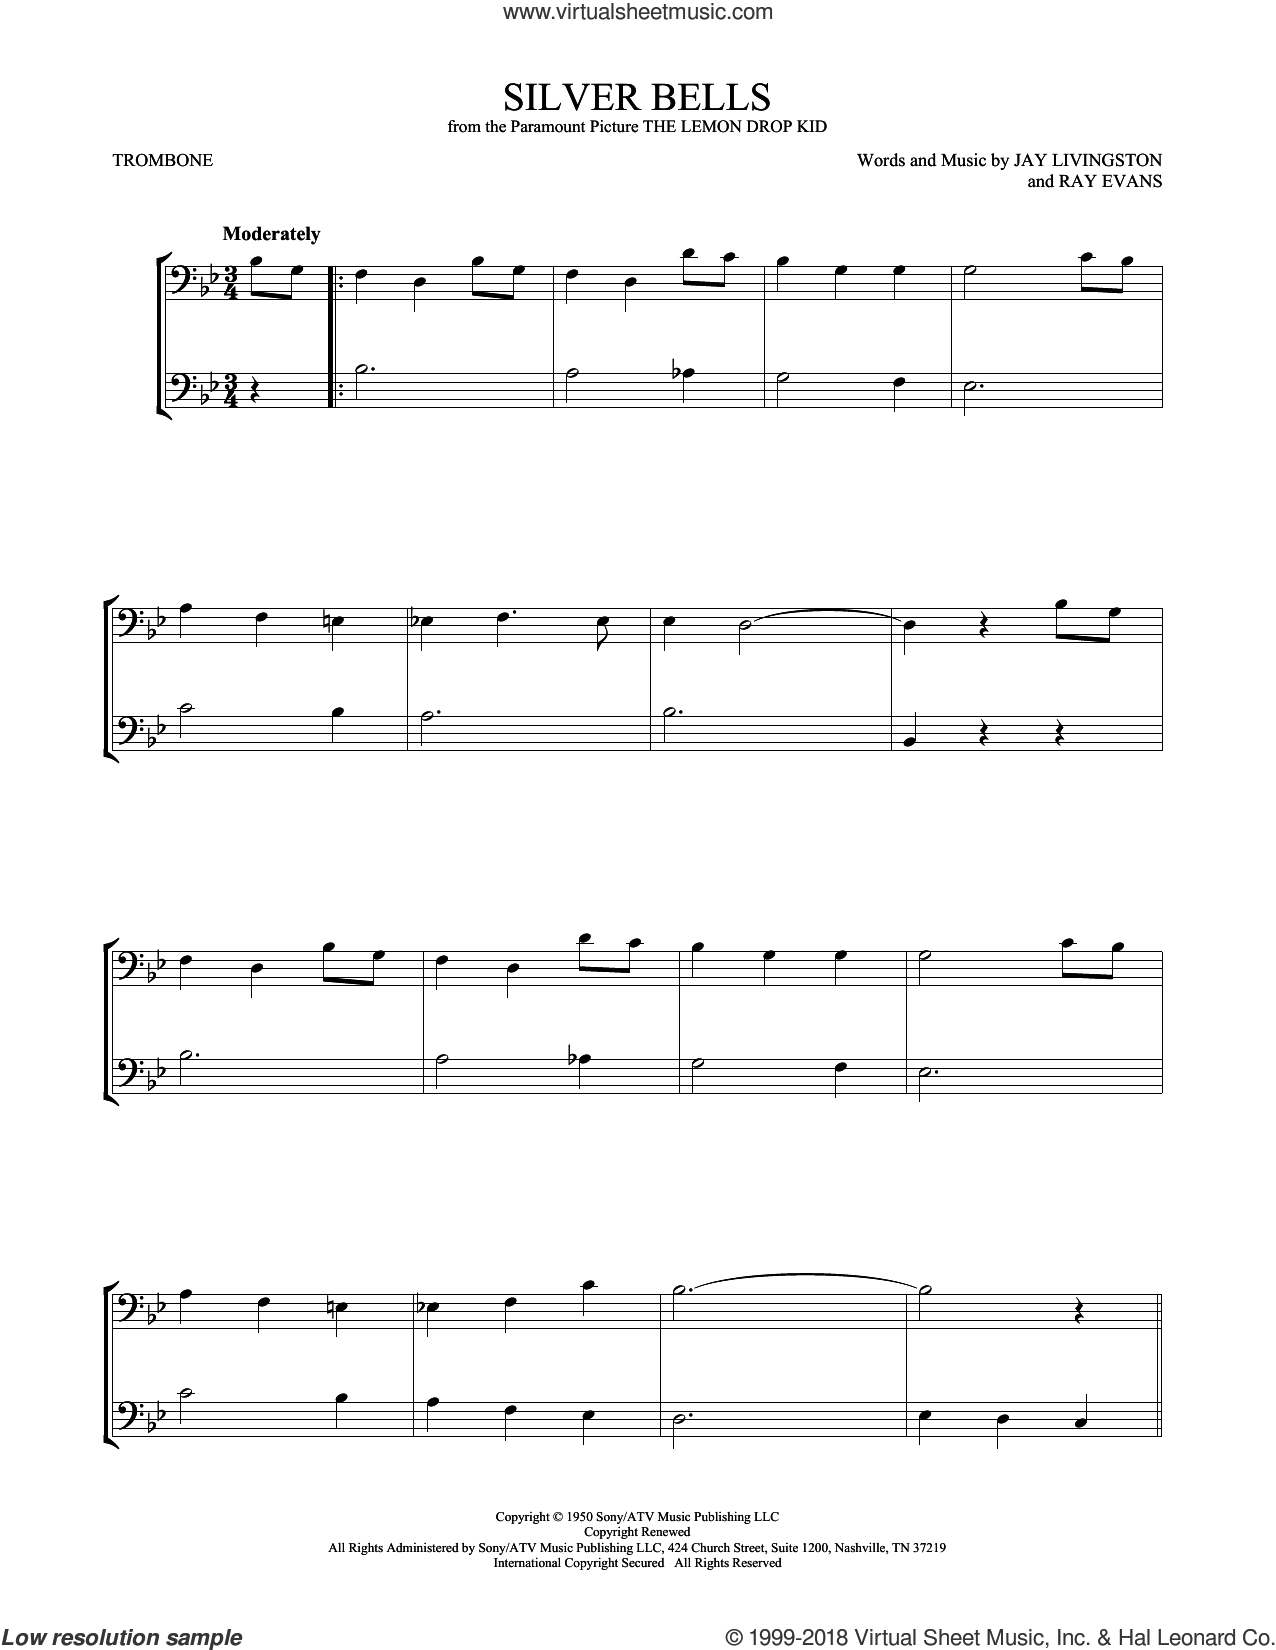 Silver Bells sheet music for two trombones (duet, duets) by Jay Livingston and Ray Evans, intermediate skill level